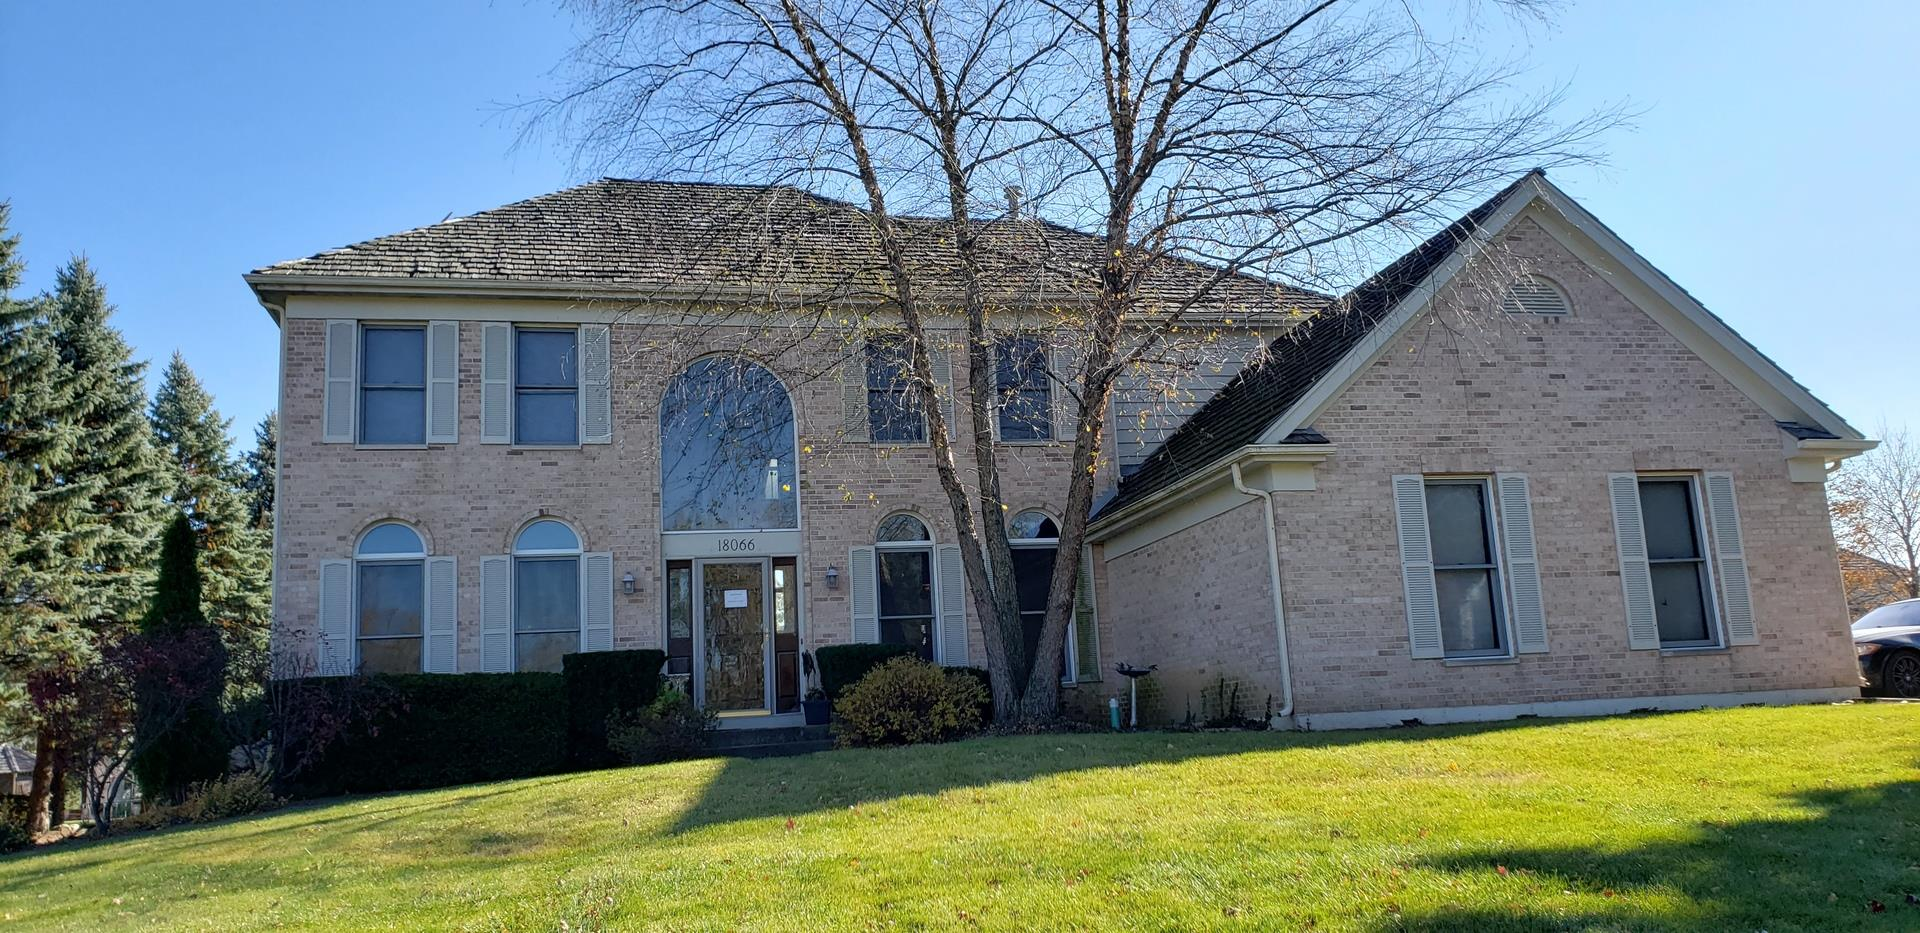 18066 W POND RIDGE Circle, Gurnee, IL 60031 - #: 10926005